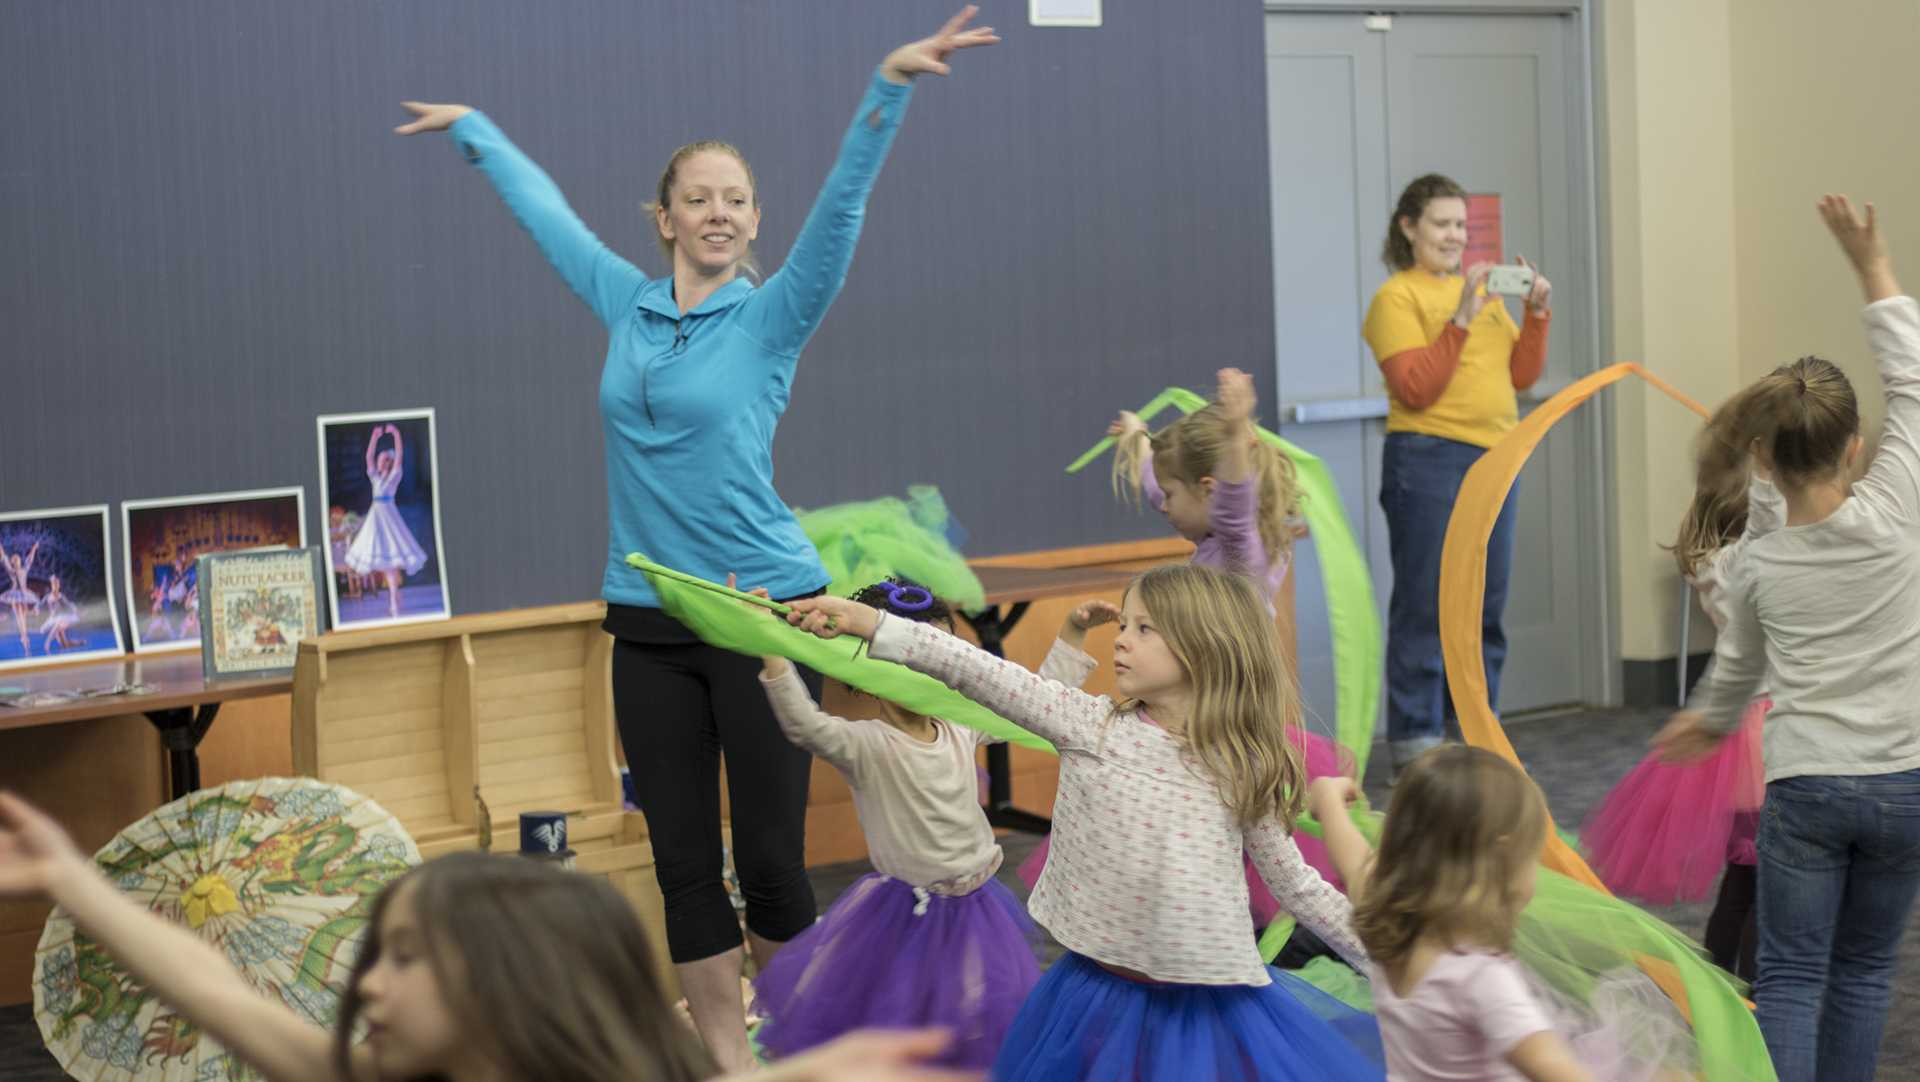 Children are taught ballet at the Iowa City Public Library on Thursday, Nov. 30, 2017. Kids in attendance were read excerpts from